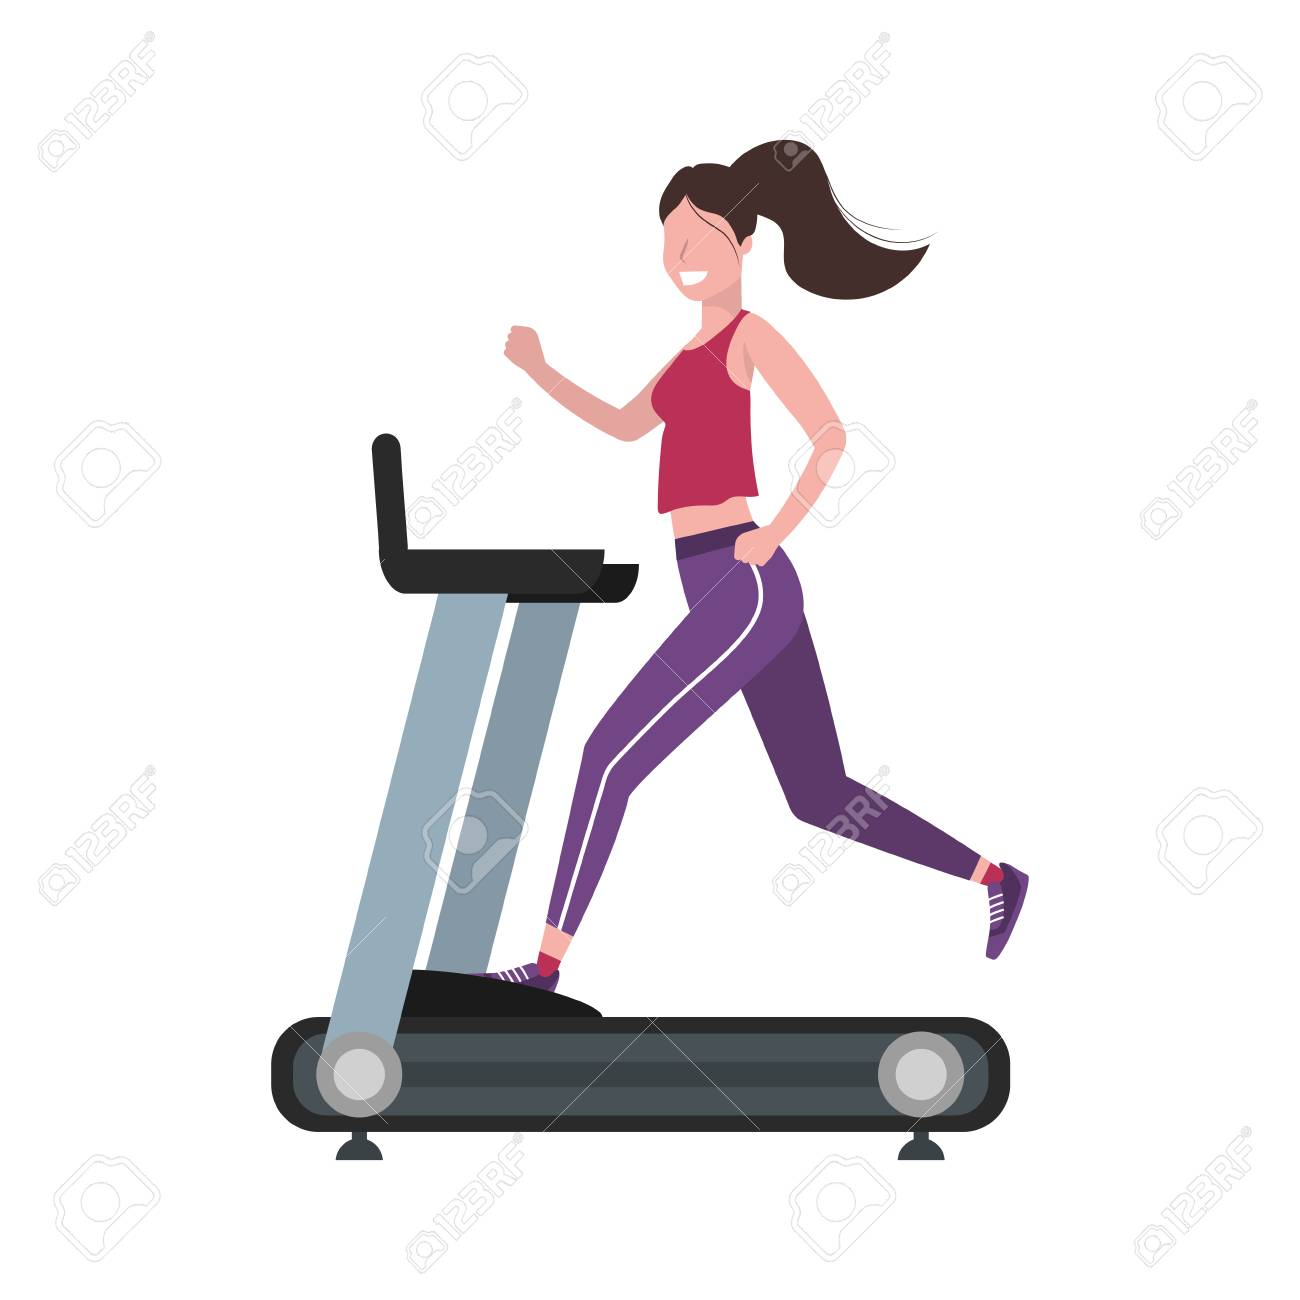 fitness exercise woman running over treadmill workout healthy fit lifestyle cartoon vector illustration graphic design - 122805135